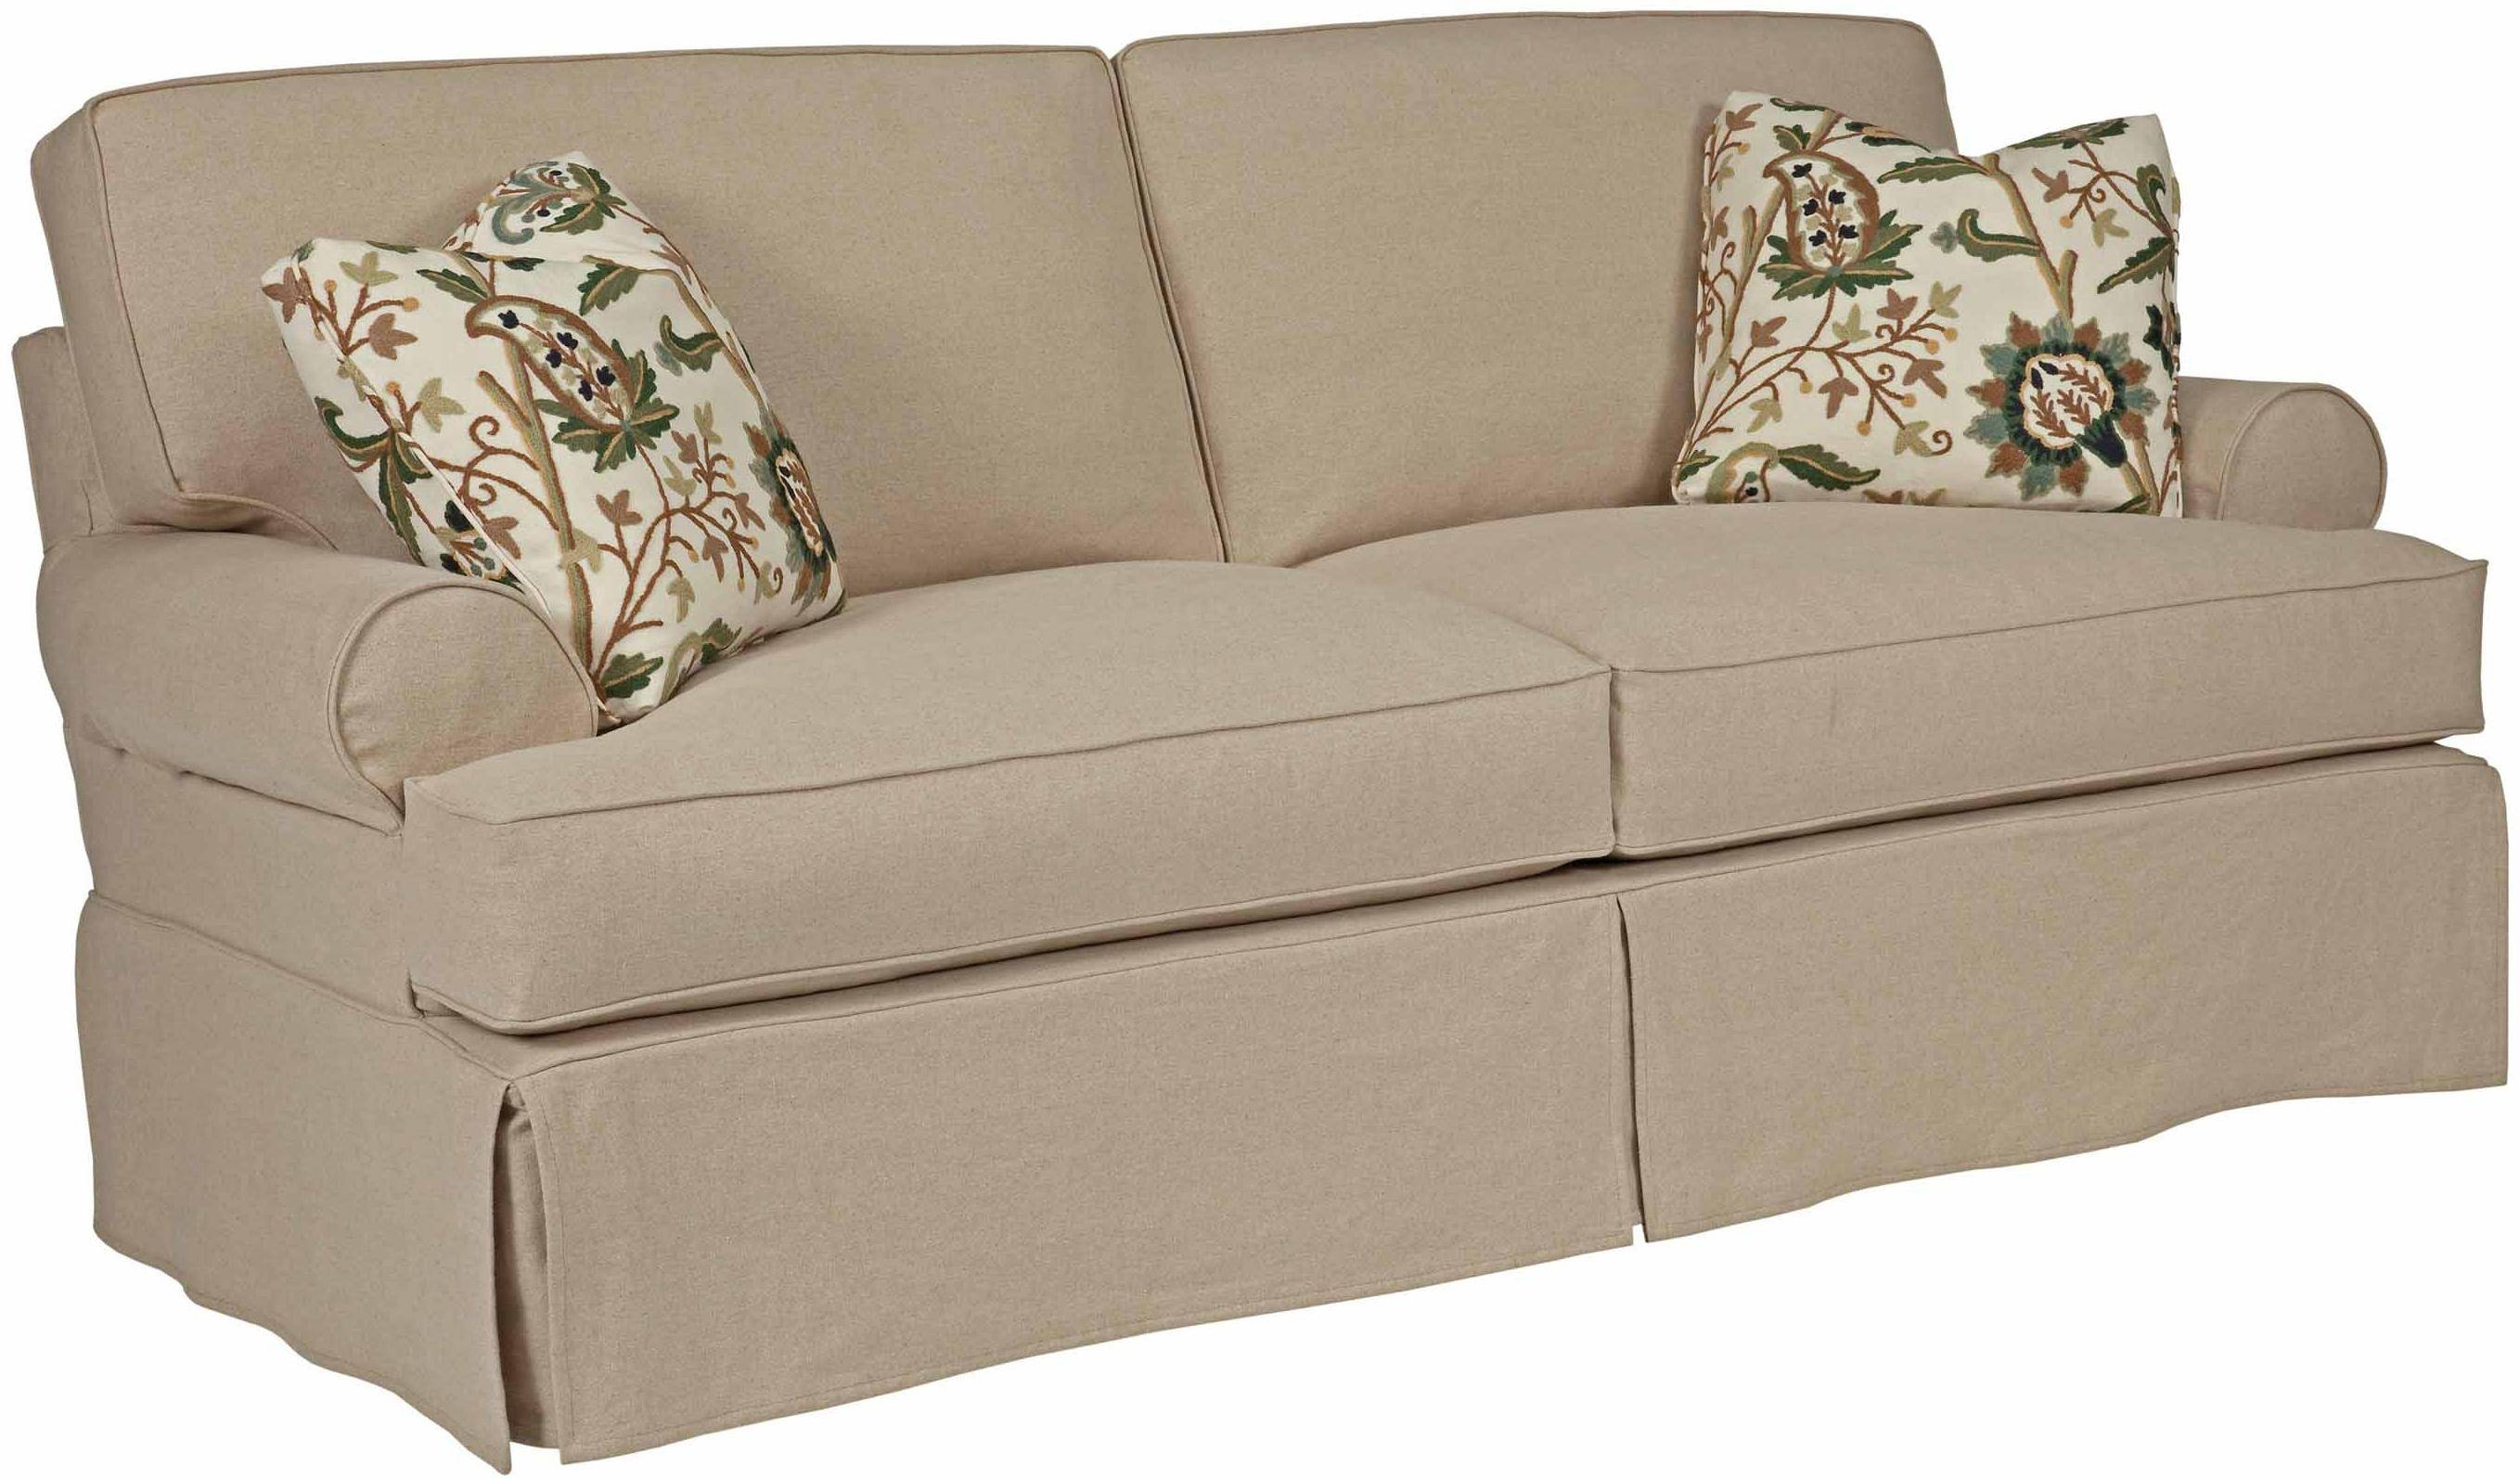 Decor: Wondrous Futon Slipcover For Comfy Home Furniture Ideas With Regard To Slipcovers For Sofas And Chairs (View 12 of 30)